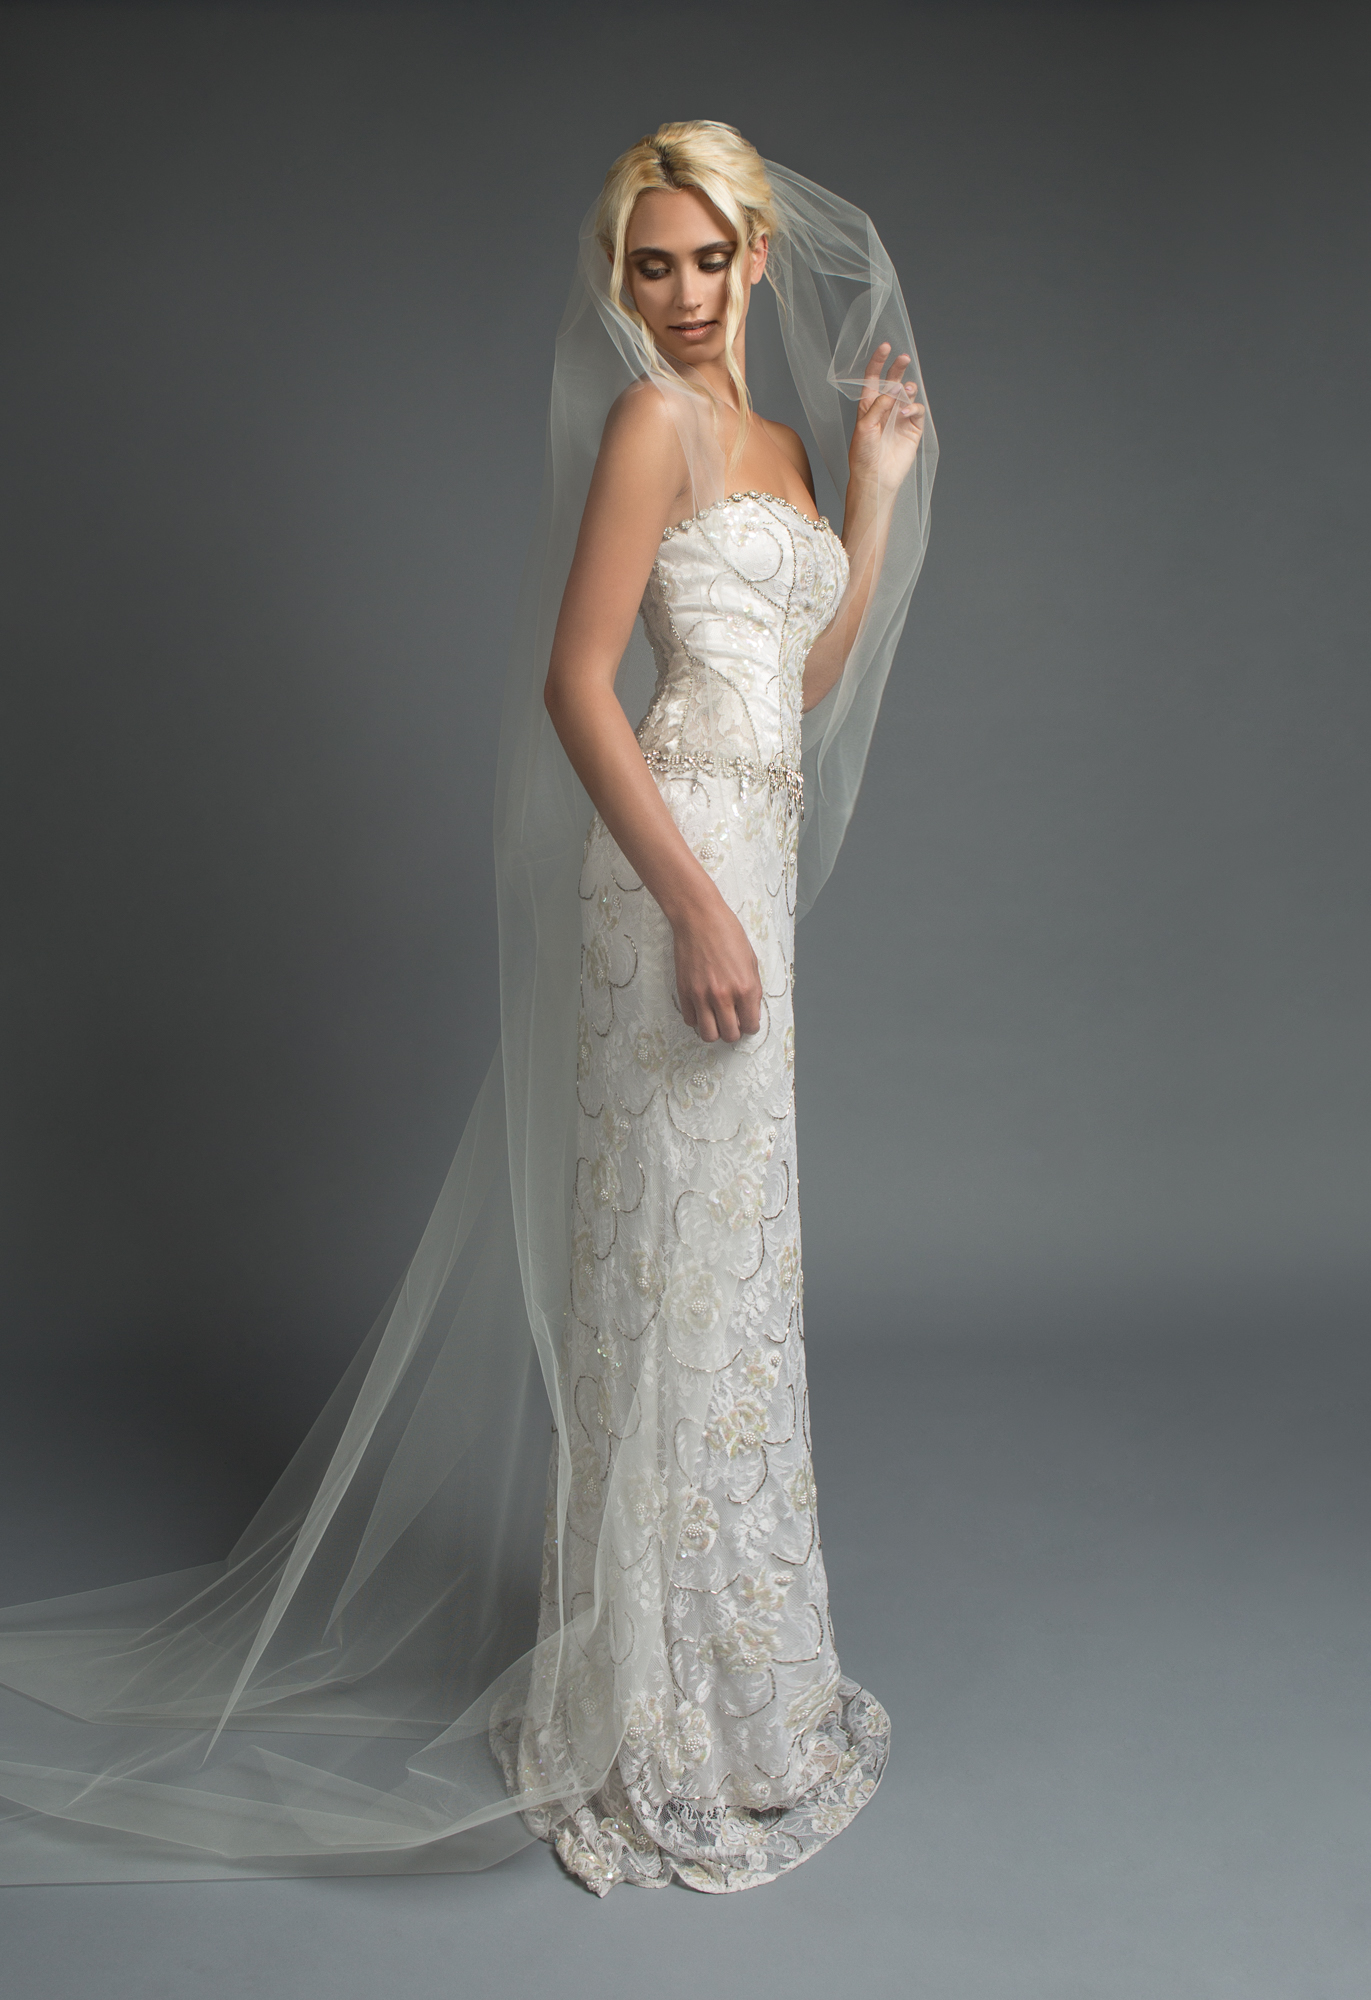 The Elyse gown from Victoria Spector Bridal Couture and the Deja Veil from Kata Banko Couture